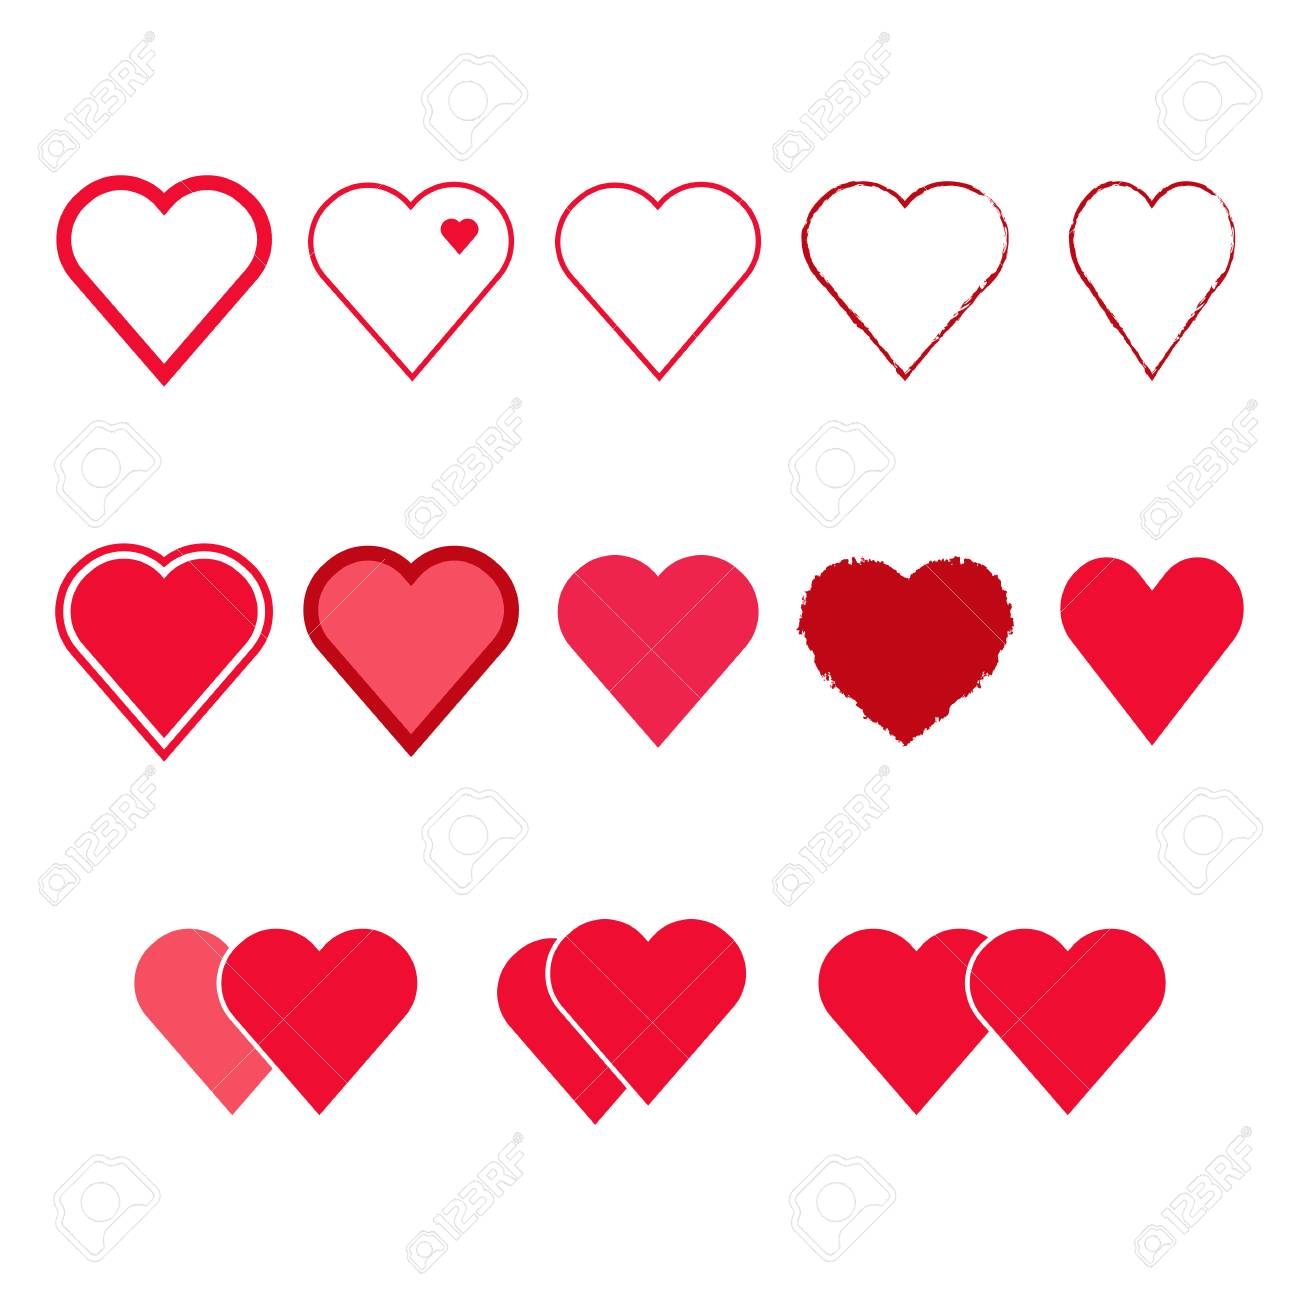 Vector Set Of Heart Shapes Isolated Symbols Royalty Free Cliparts